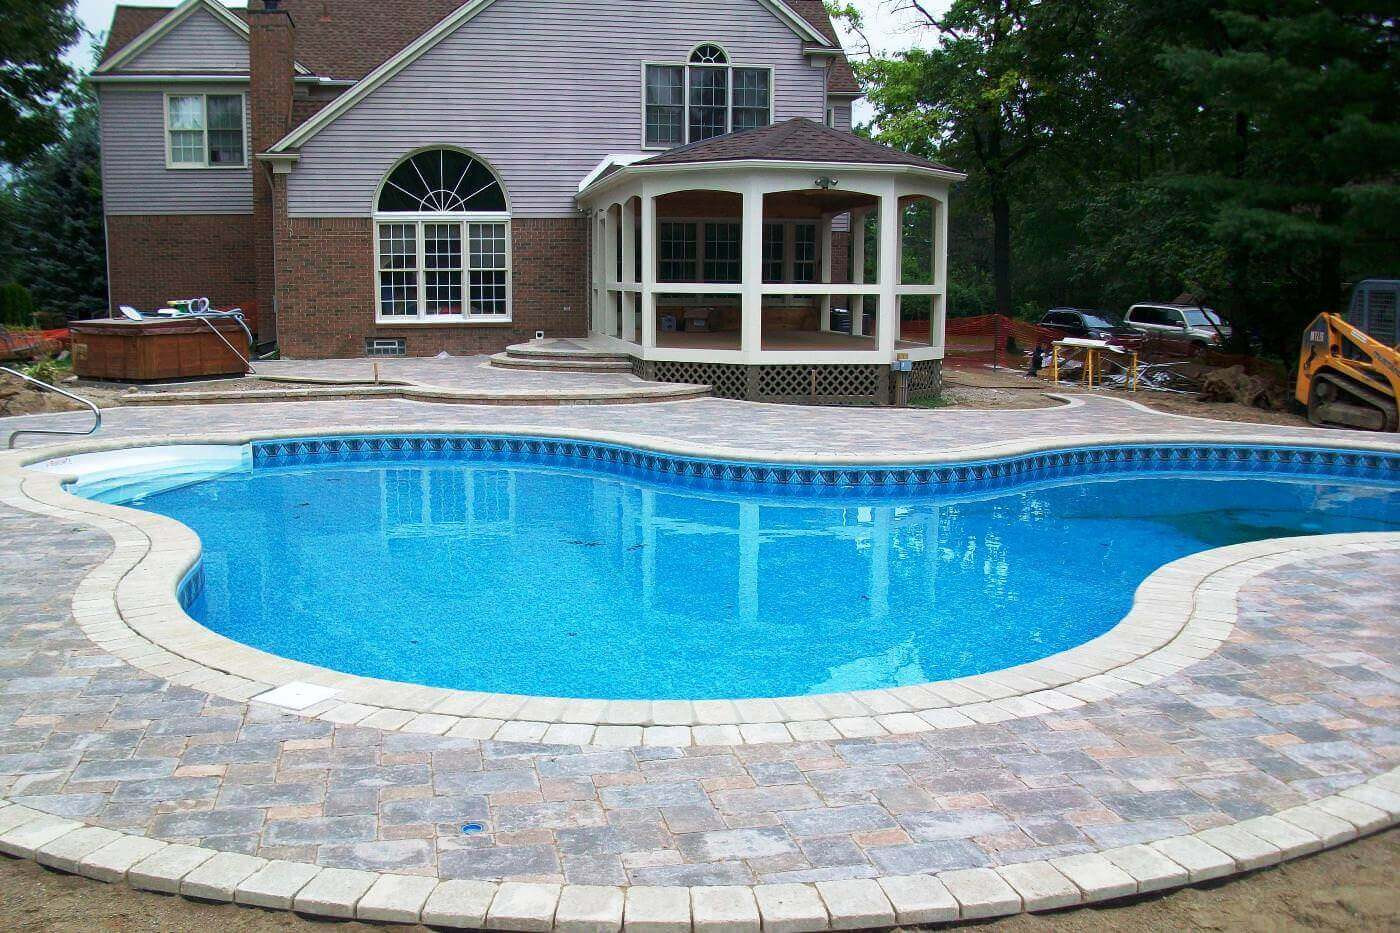 Best ideas about Cost Of An Inground Pool . Save or Pin Cost To Install An Inground Pool Cost Inground Pool Now.